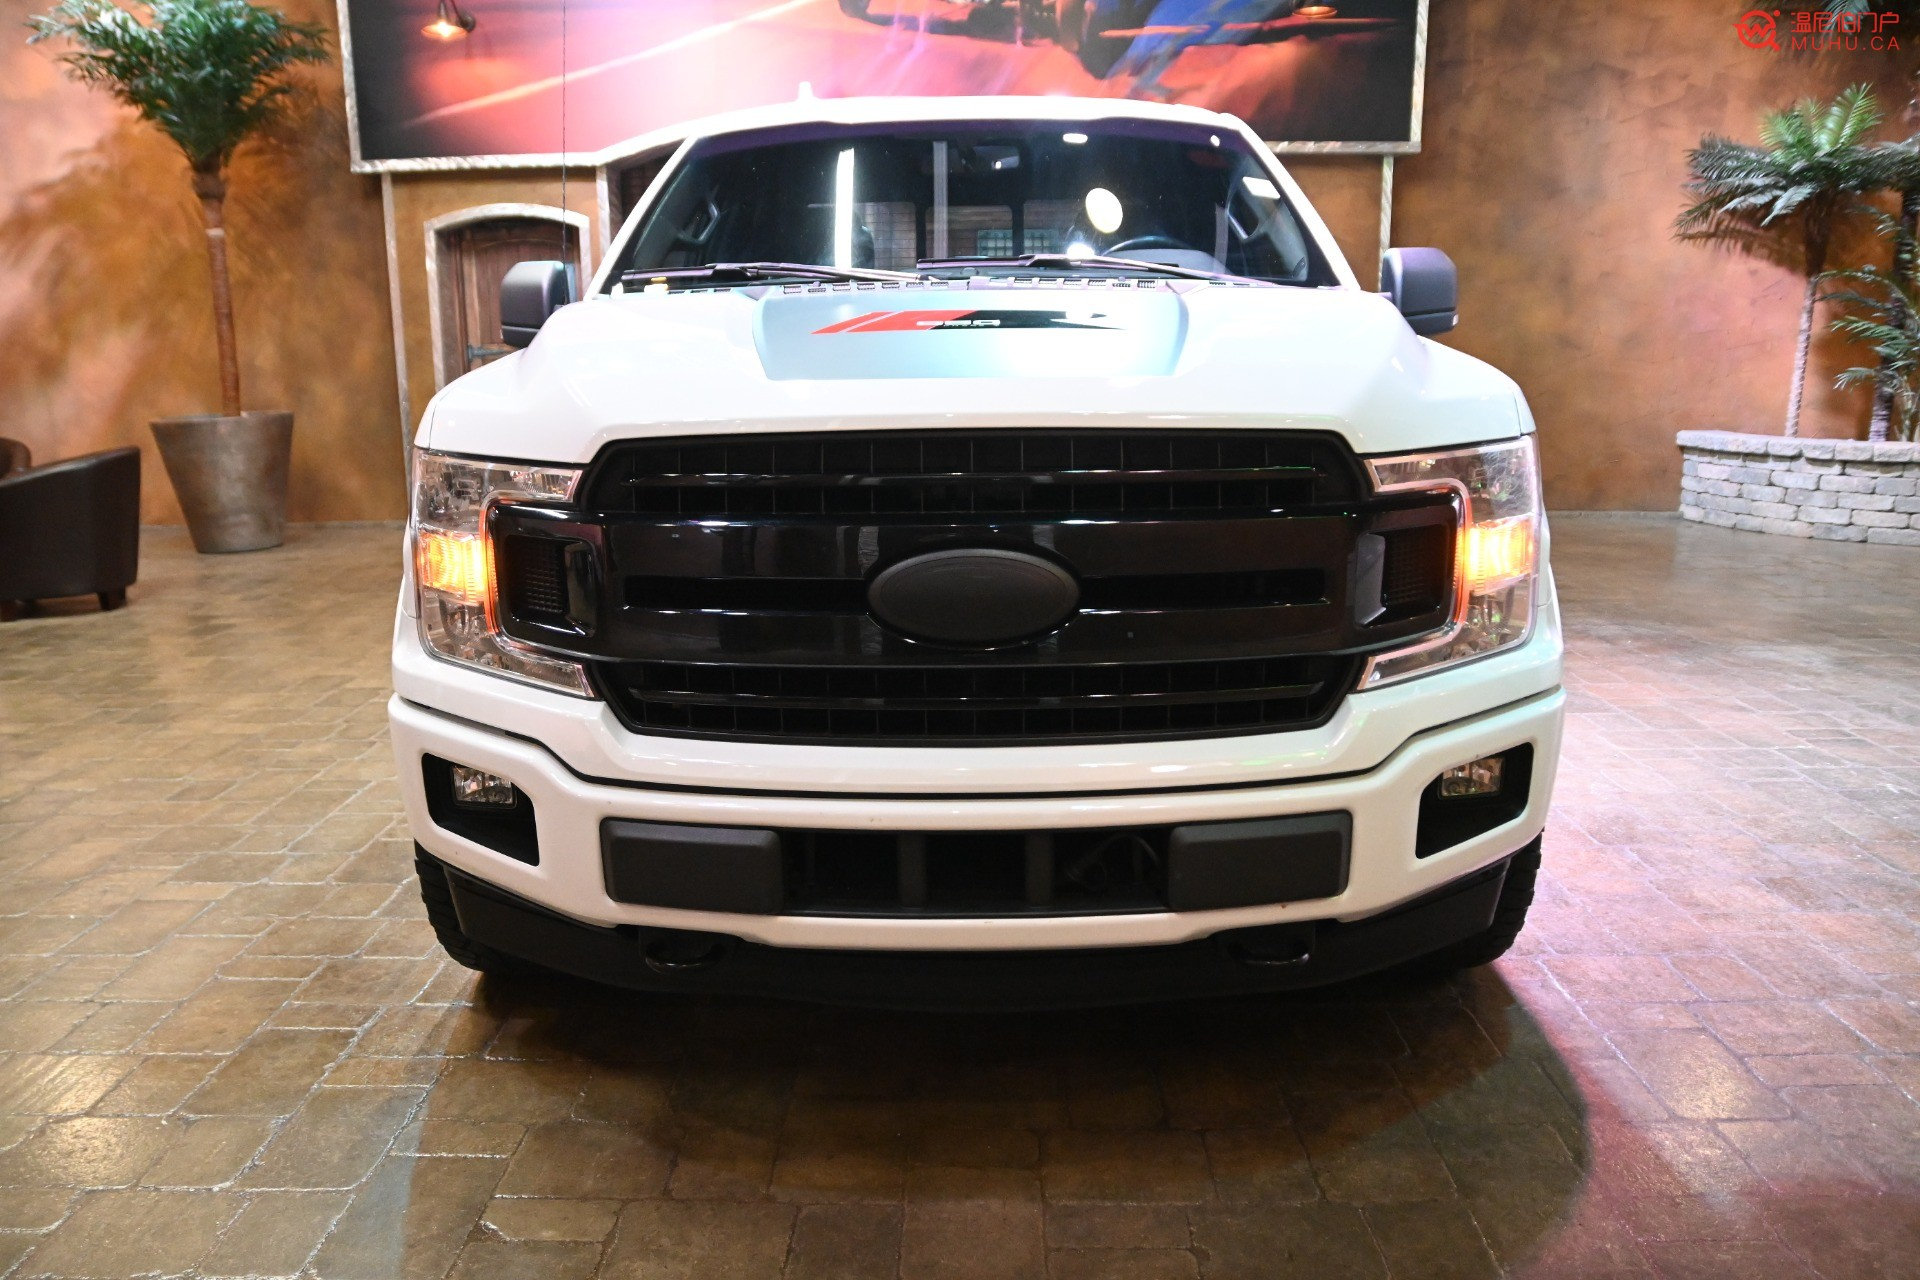 Used-2018-Ford-F-150-ROUSH-SUPERCHARGED-MONSTER-!! (5).jpg